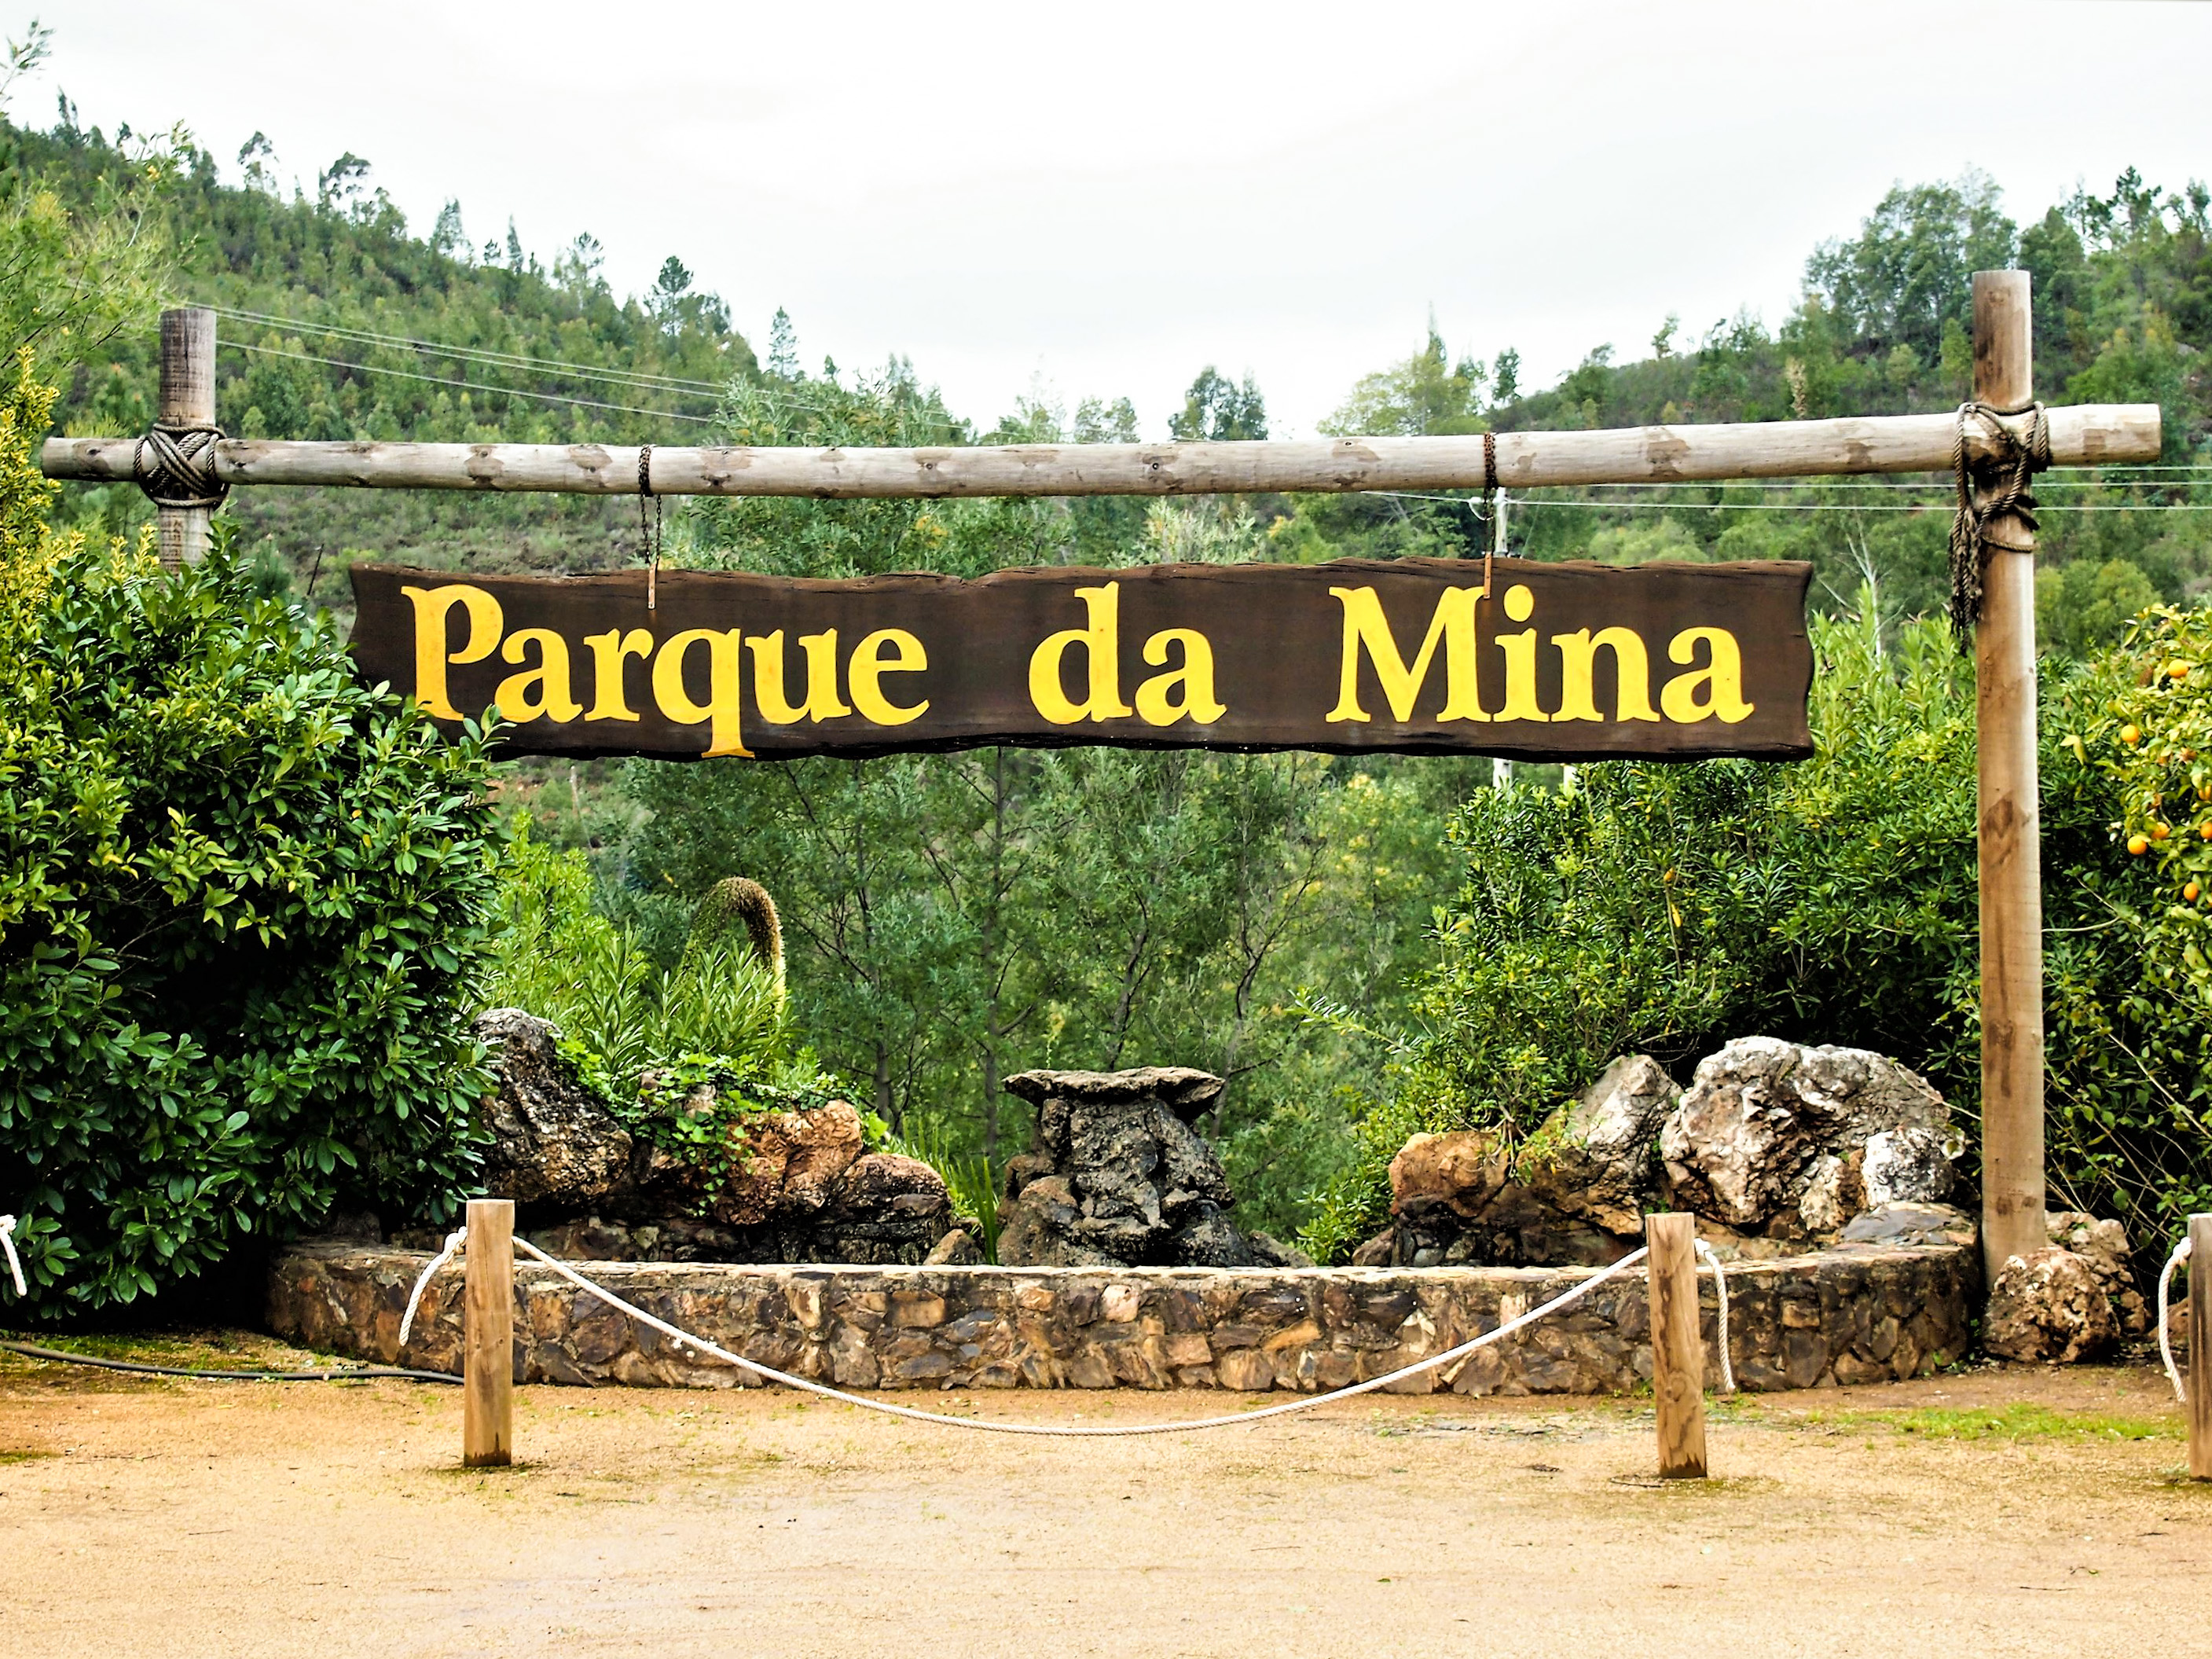 Parque da Mina or Mine Park near Monchique